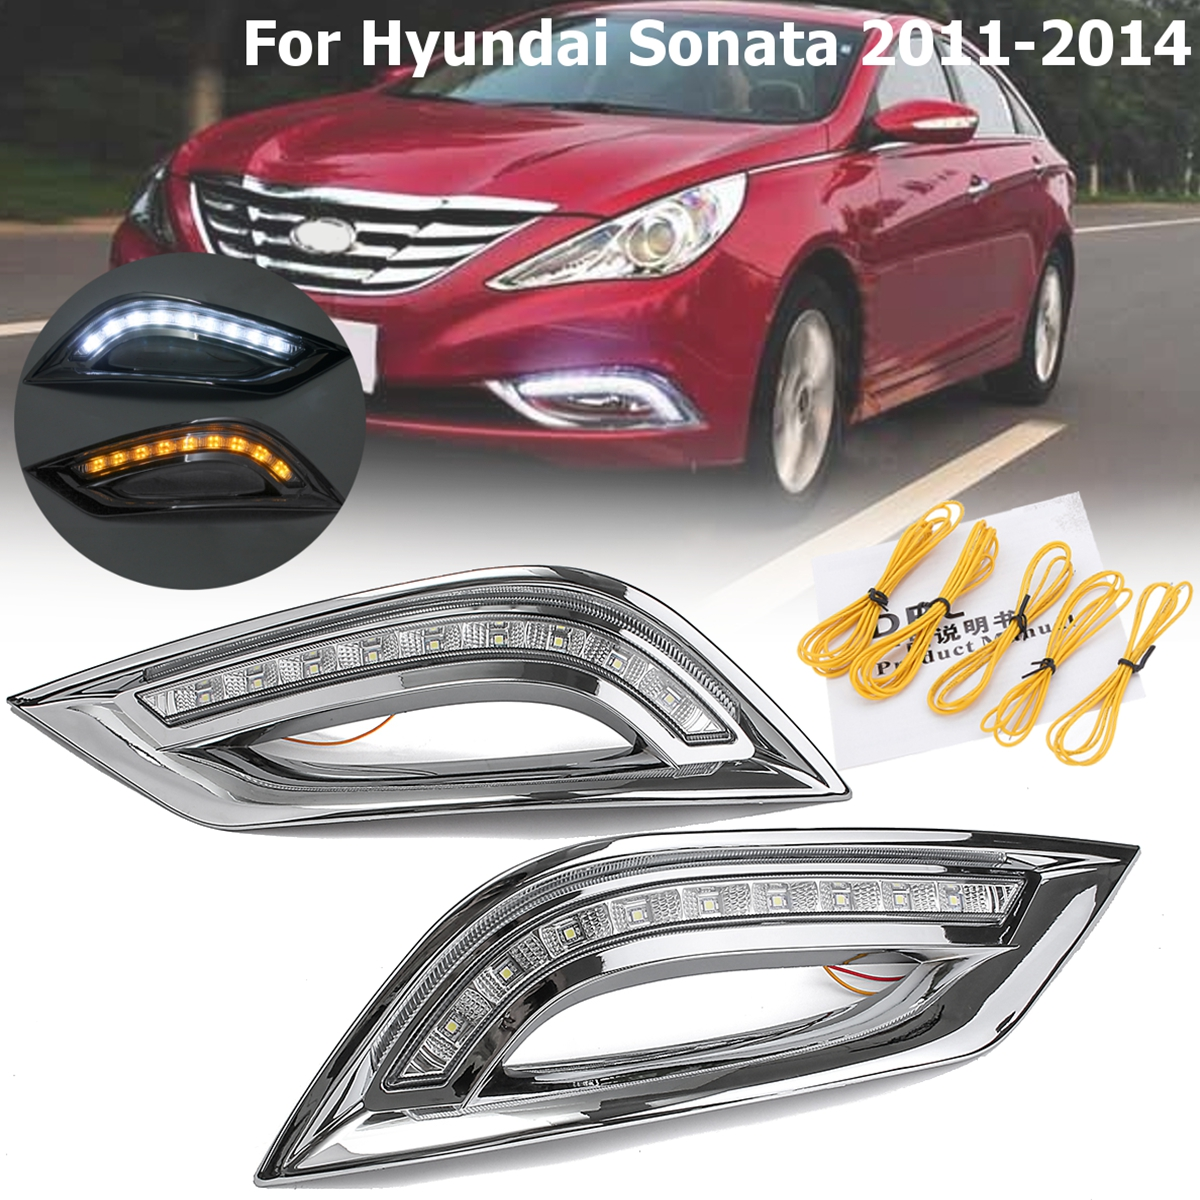 1 Pair LED DRL Daytime Running Lights Turn Signal Fog Lights Lamp For Hyundai Sonata 2011 2012 2013 2014 okeen 2pcs high quality led drl for ford raptor f150 2010 2011 2012 2013 2014 daytime running lights with turn signal lamp 12v